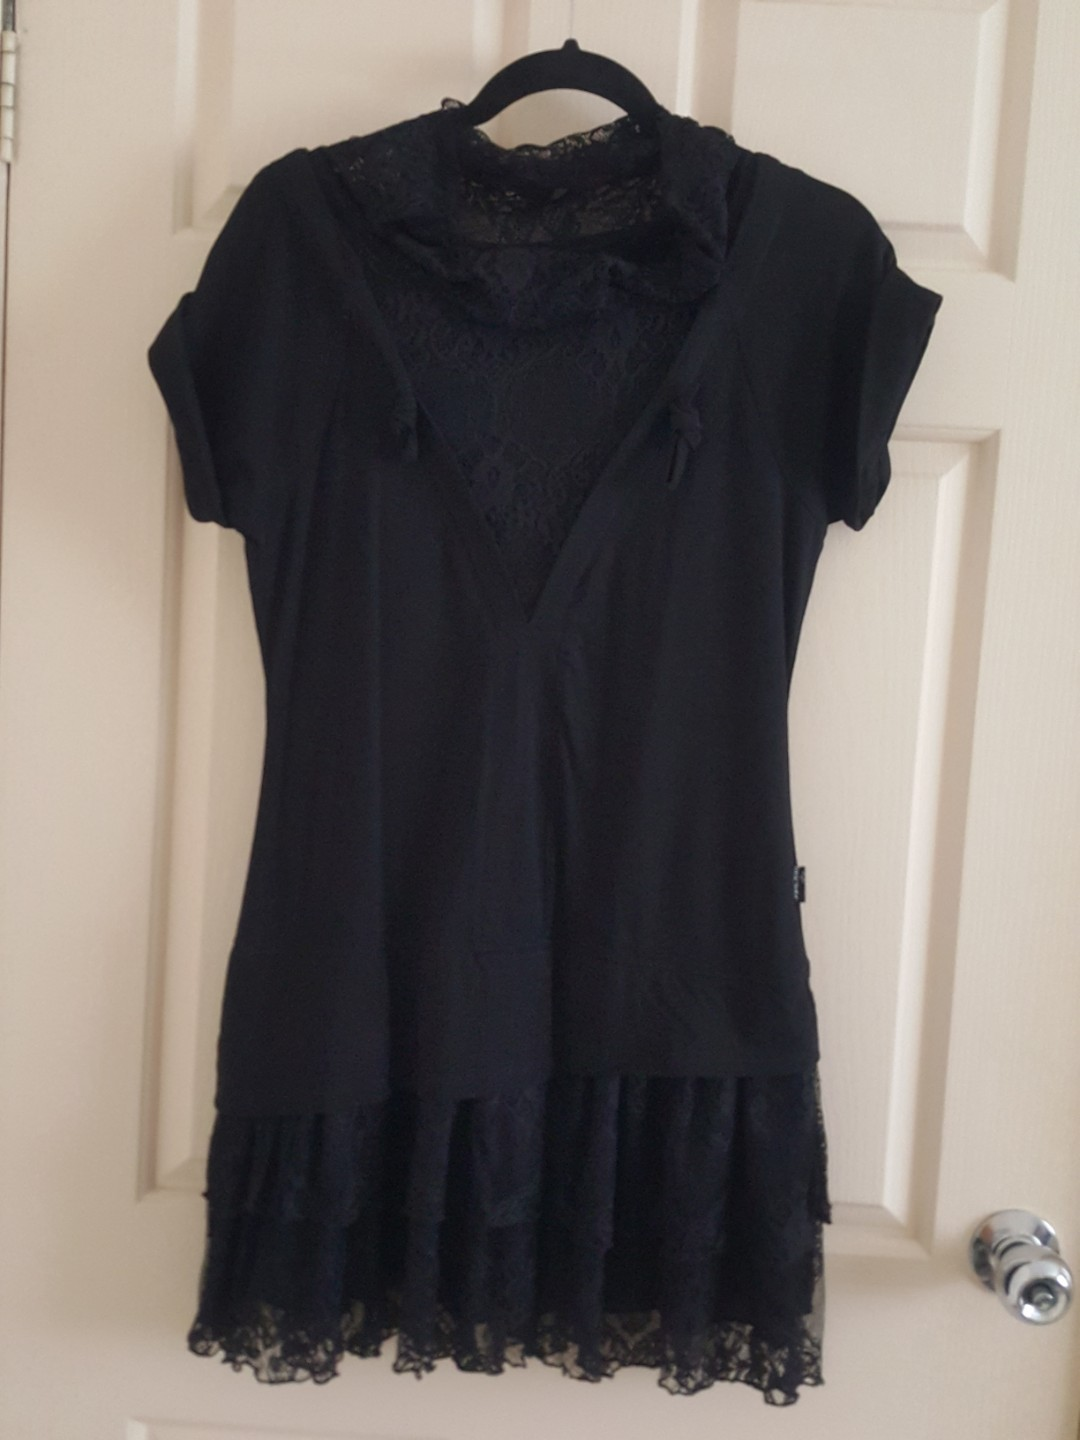 Goth-styled lace dress